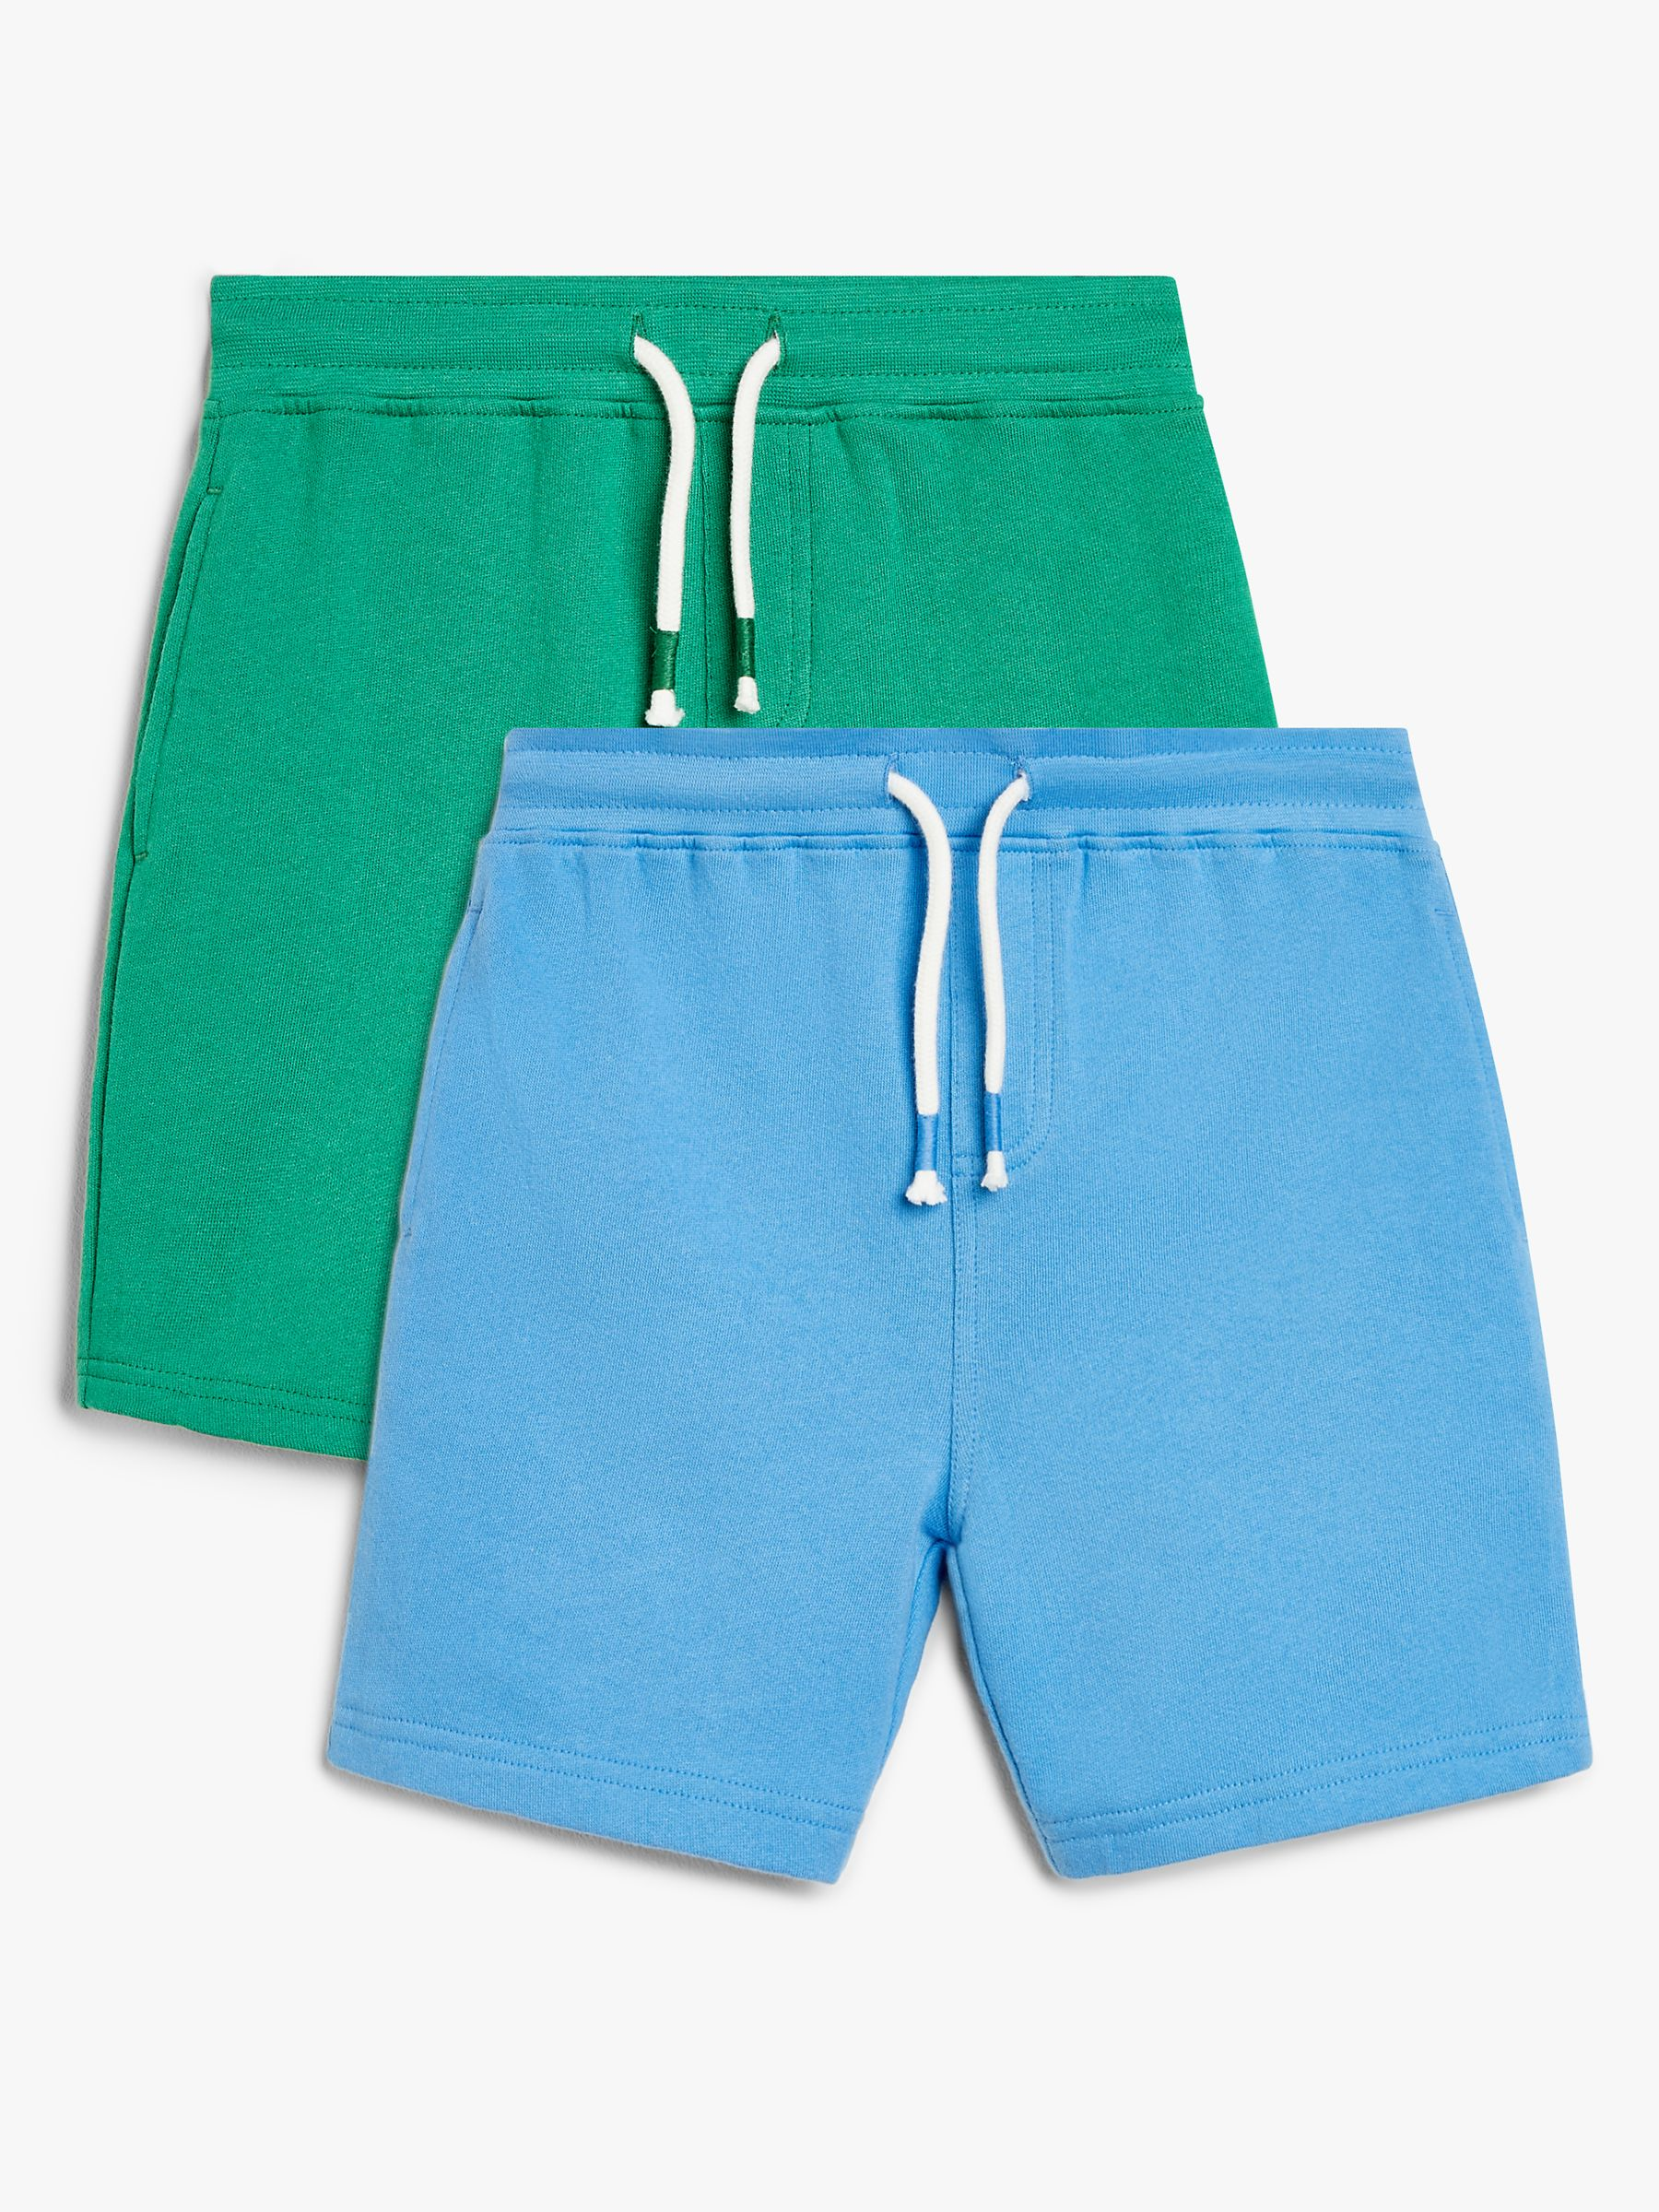 11,12,13 years John Lewis Loved and Found orange shorts New.